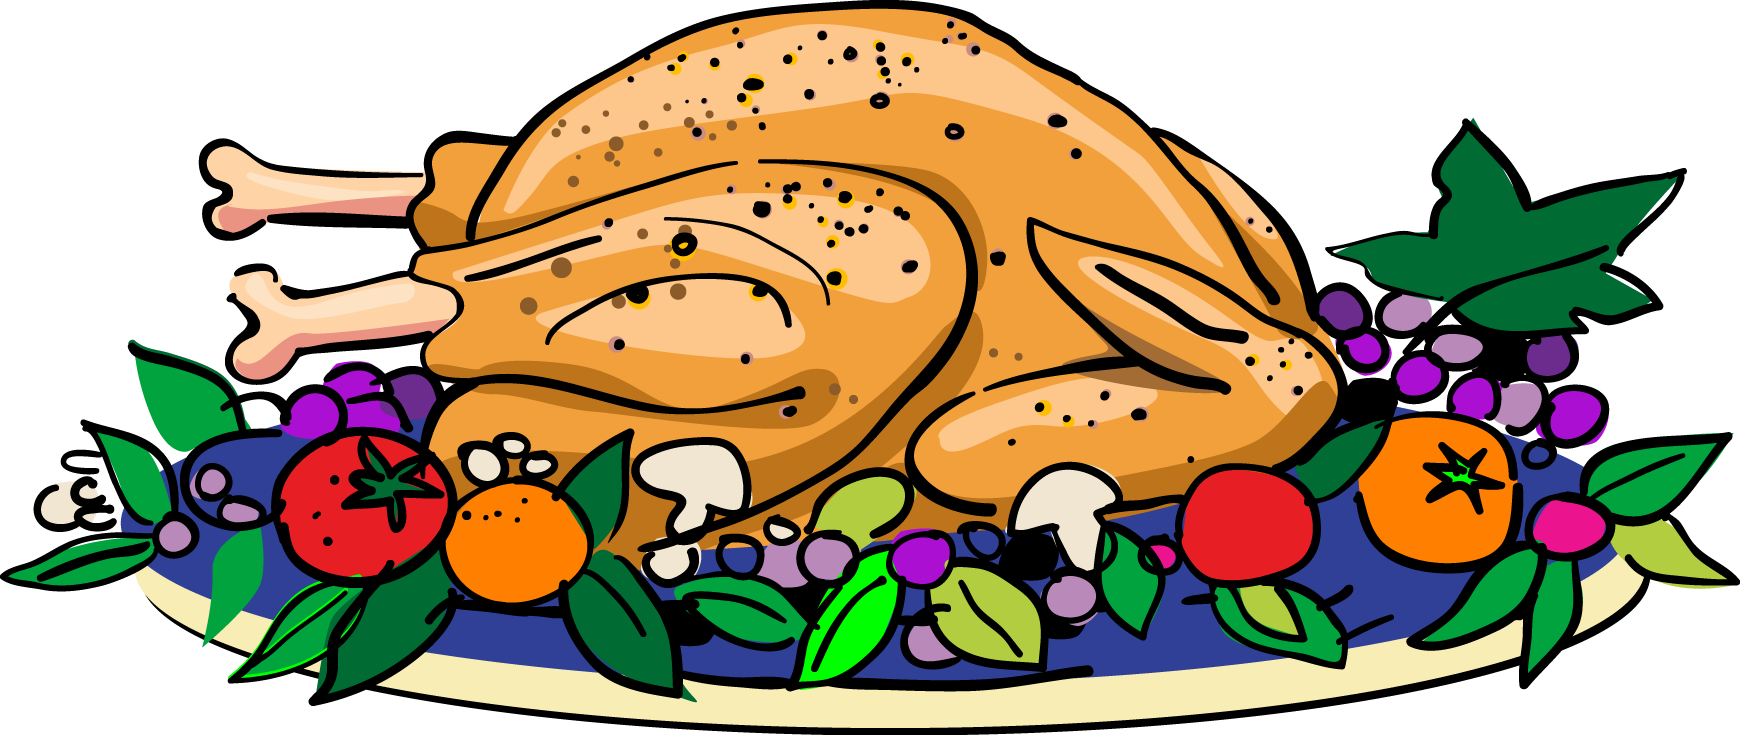 1740x735 Turkey Dinner Clipart Free Images 4